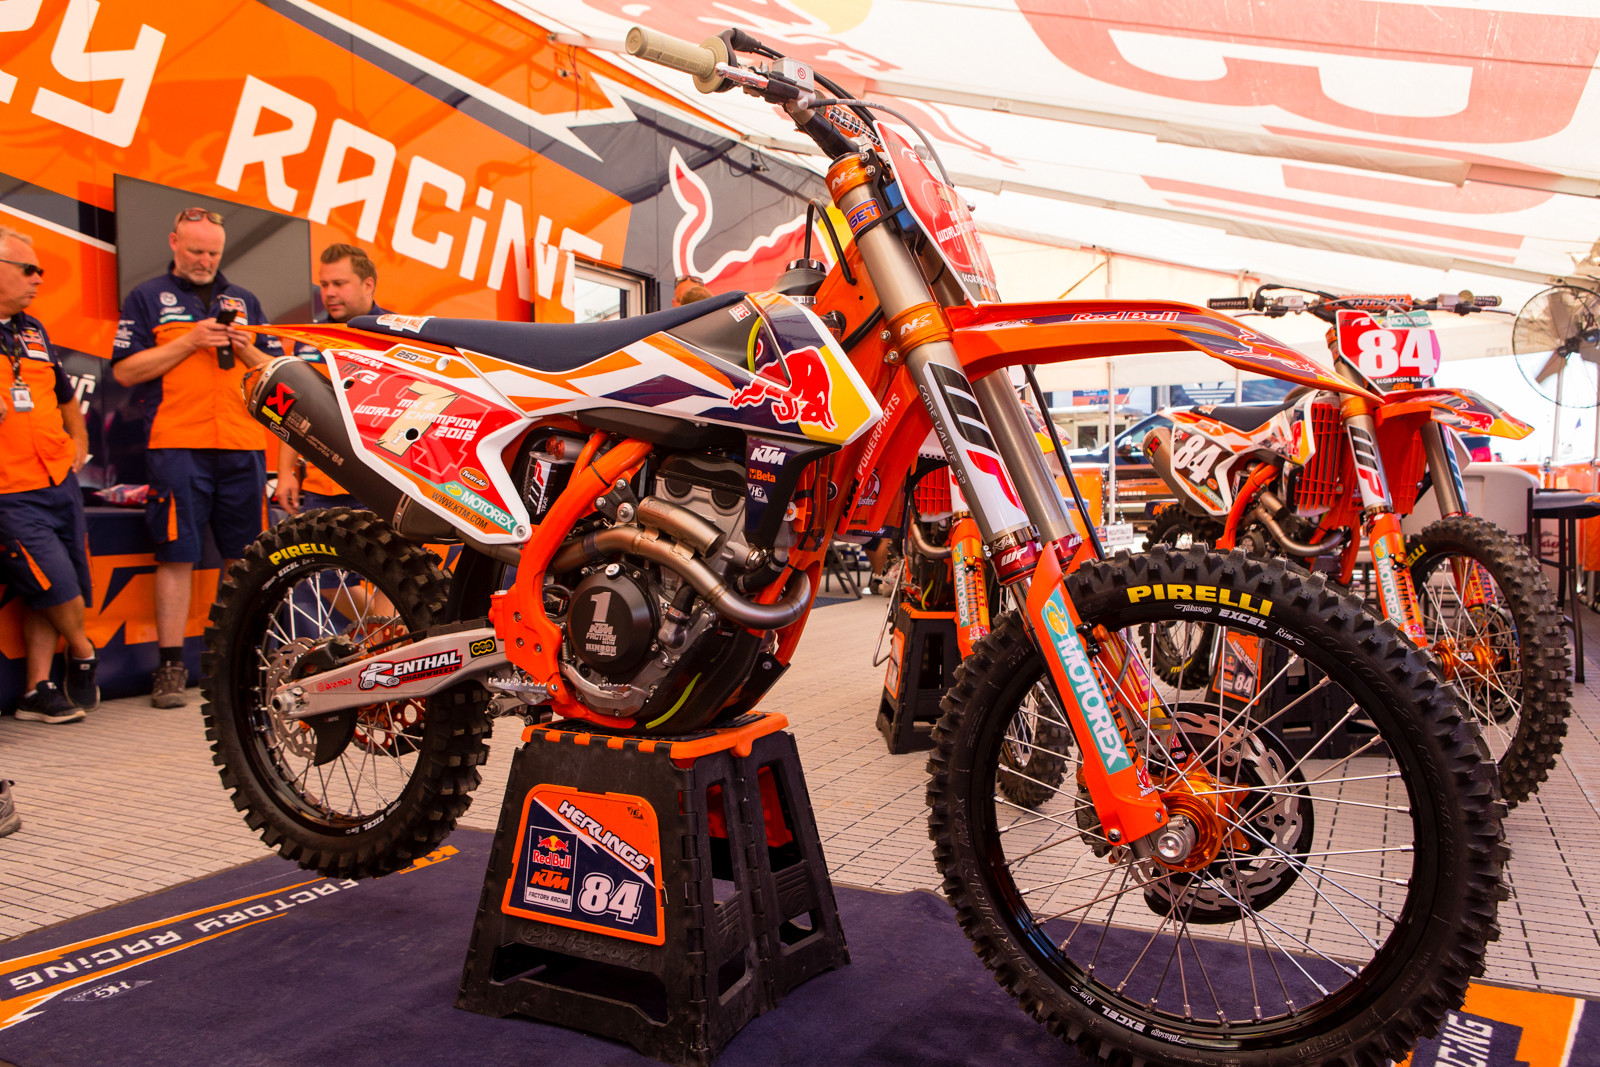 Jeffrey Herling's Red Bull KTM 250 SX-F - Vital MX Pit Bits: 2016 MXGP of USA - Motocross Pictures - Vital MX